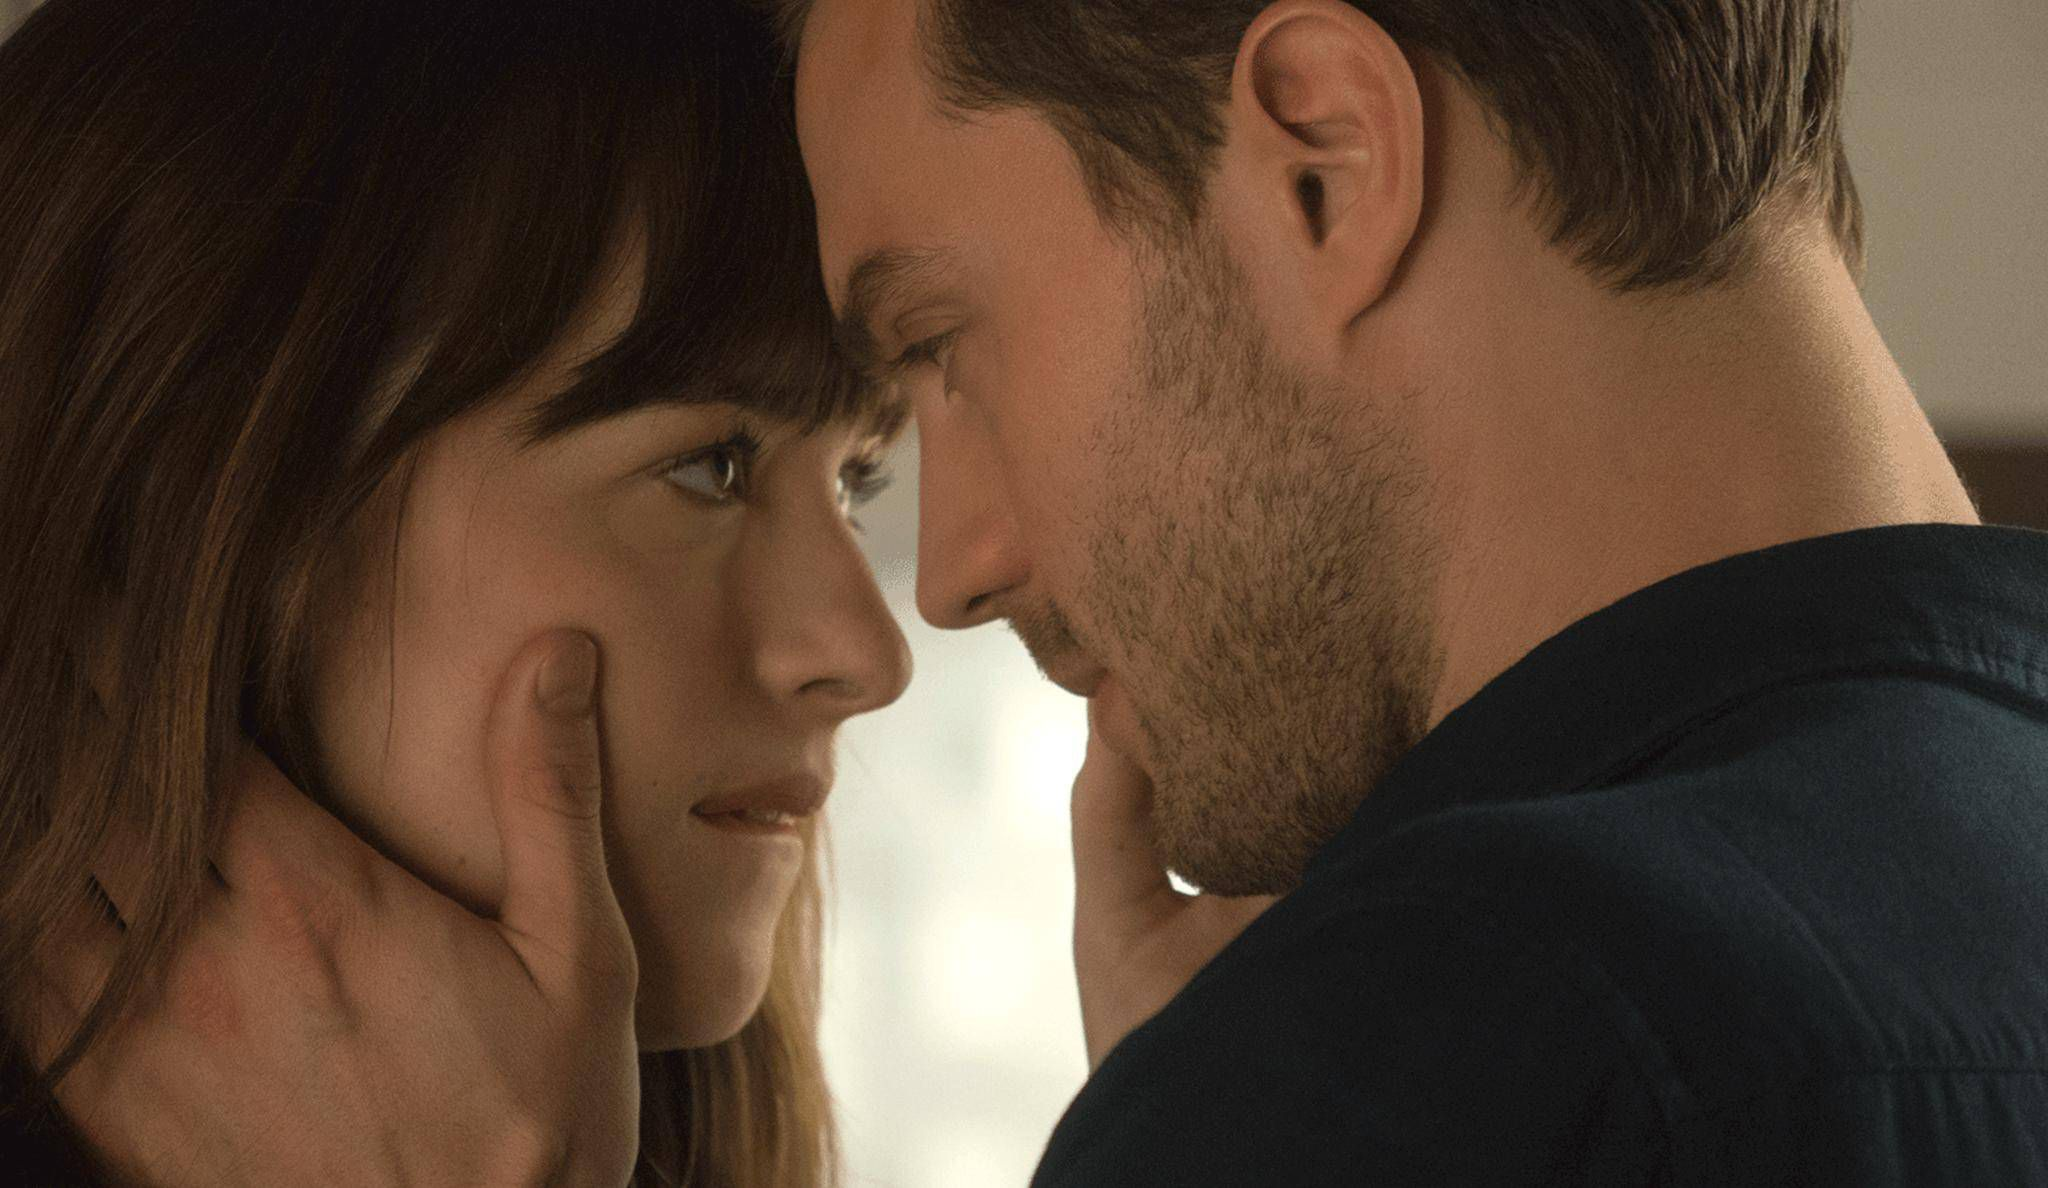 The normalization of stalking and non-consensual BDSM in Fifty Shades Of Grey (2015)